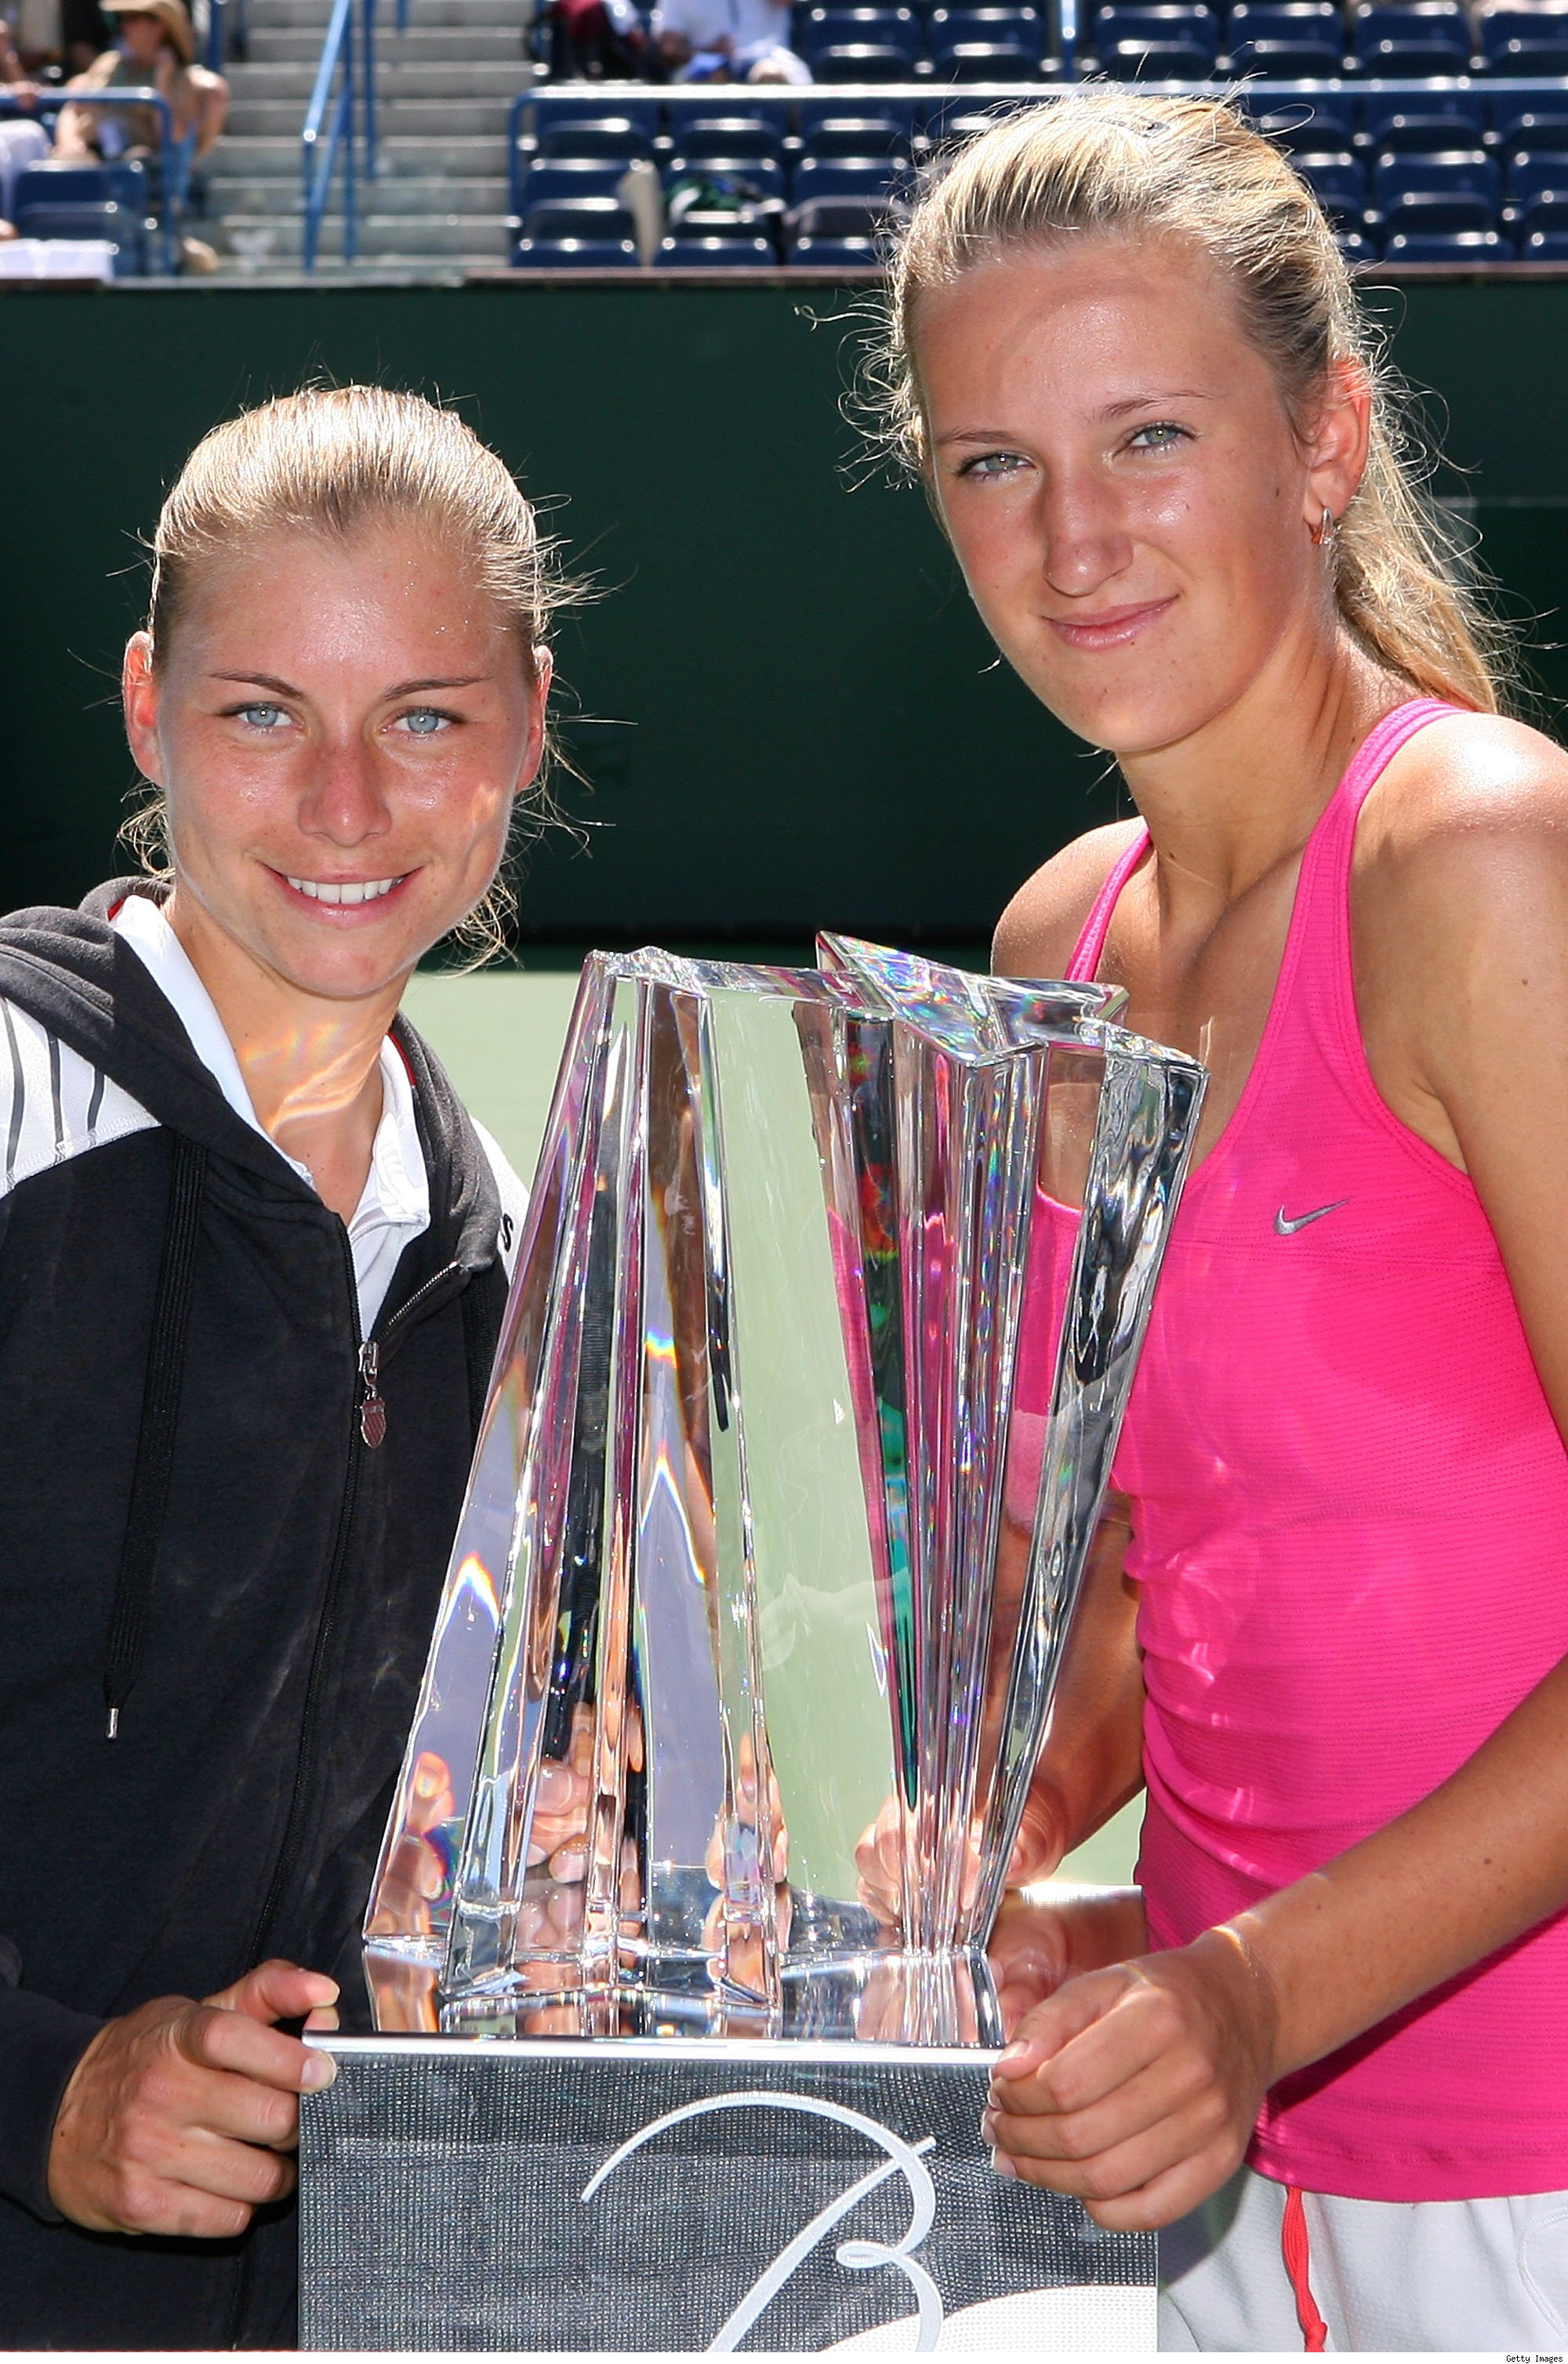 Vera Zvonareva and Victoria Azarenka